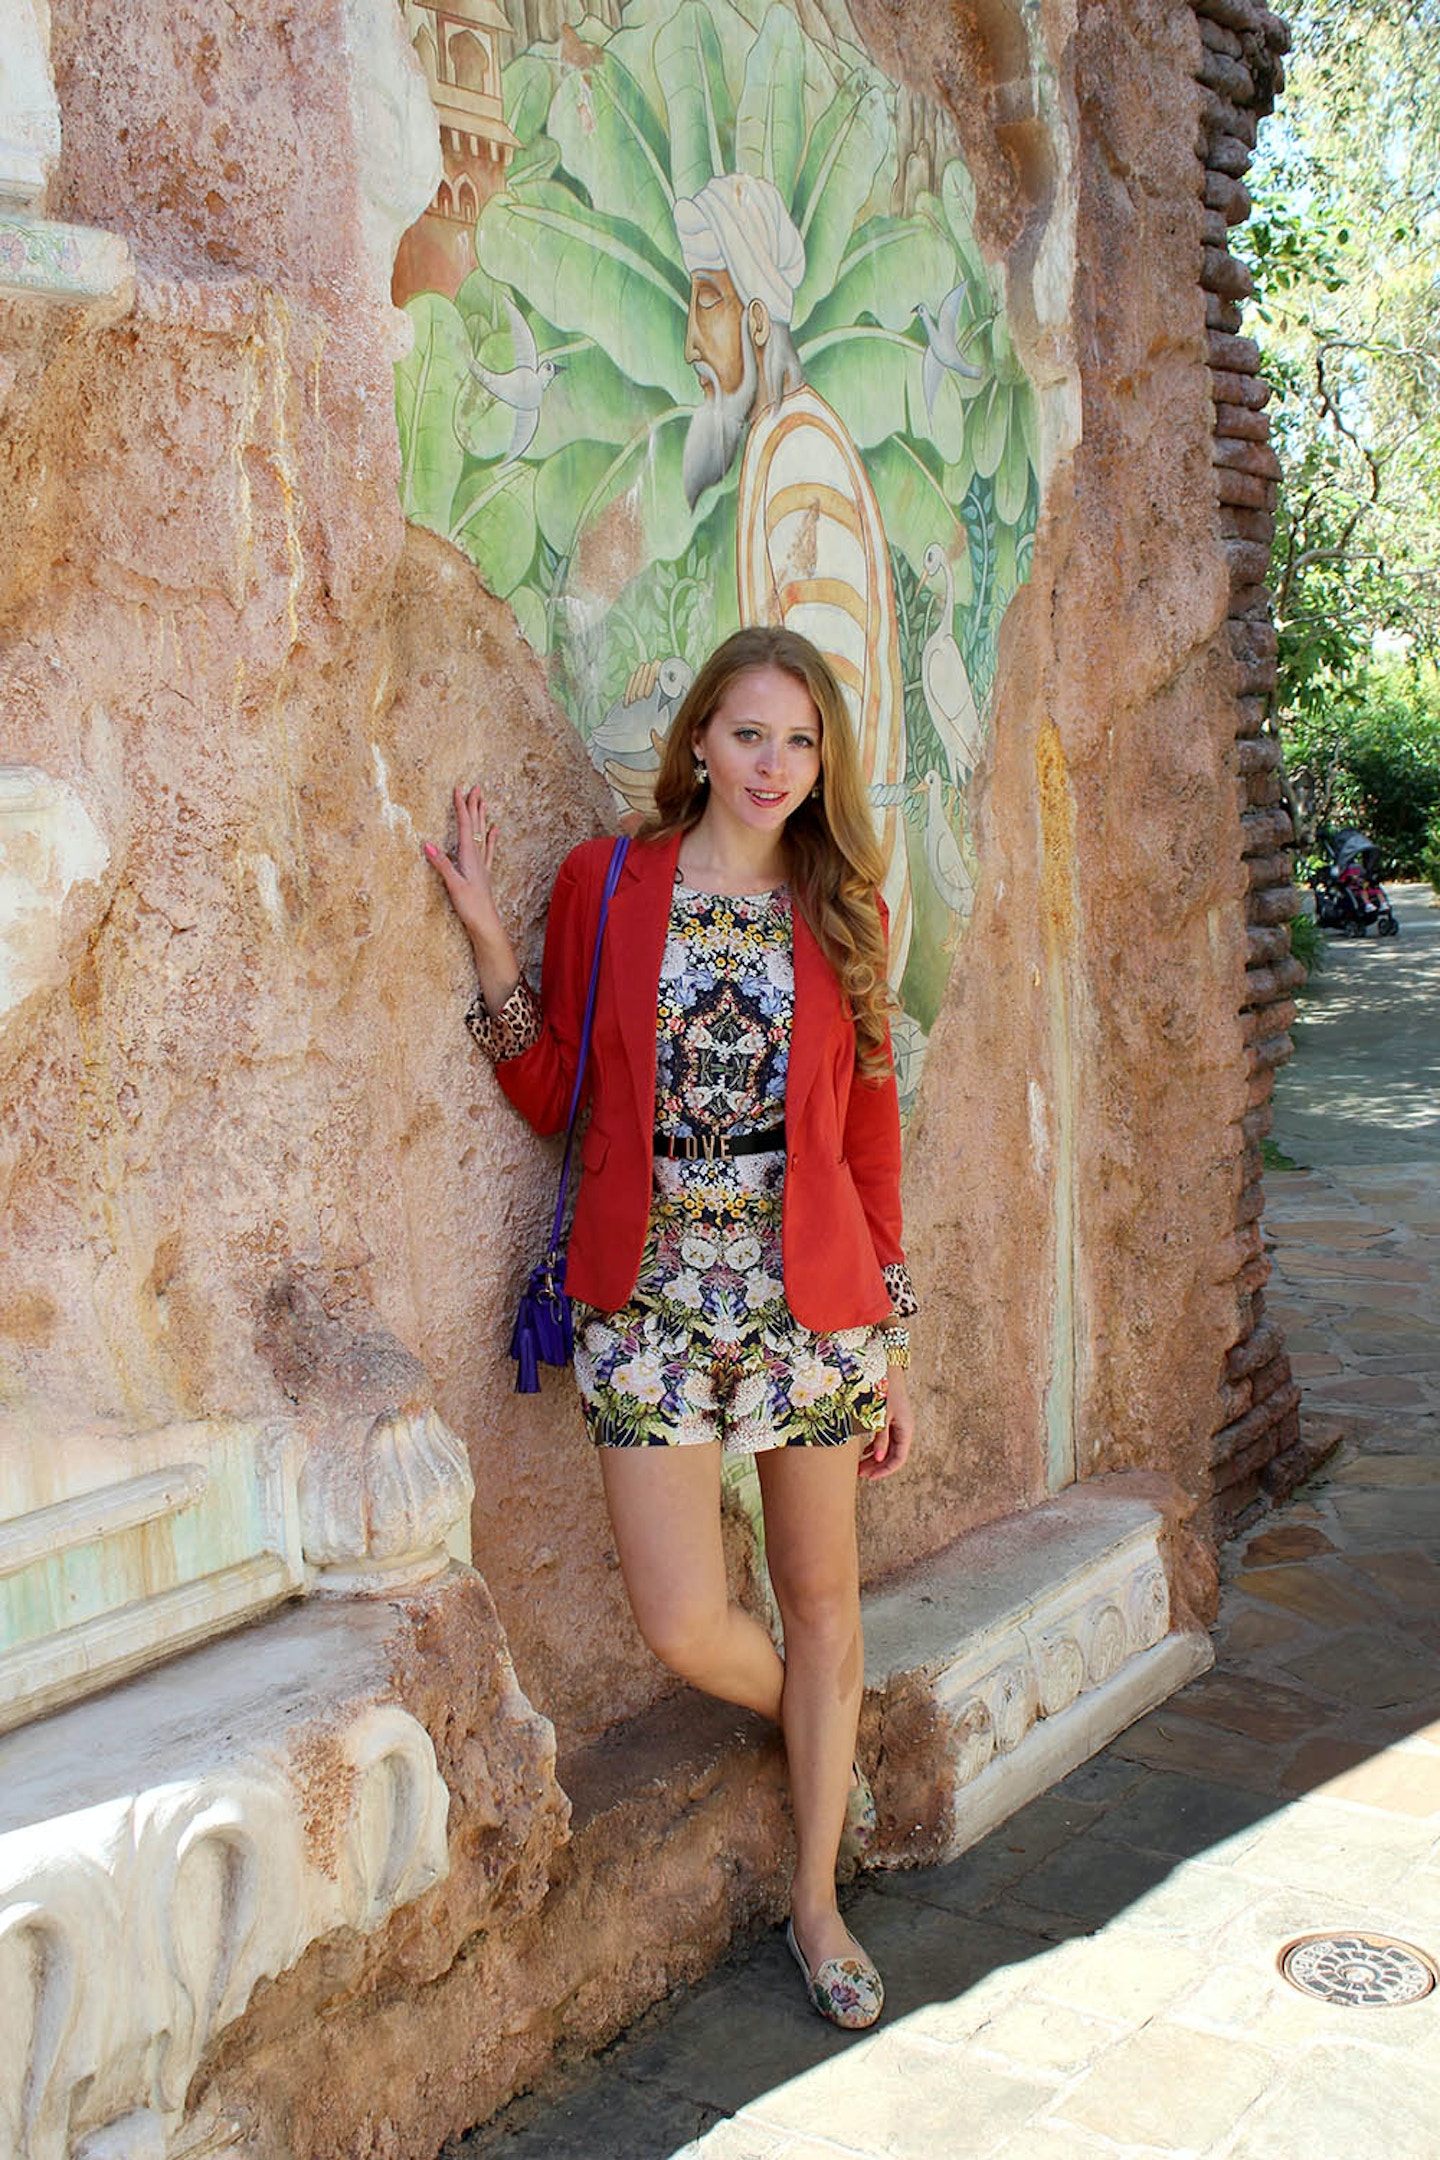 Floral Jumpsuits and Animal Kingdom